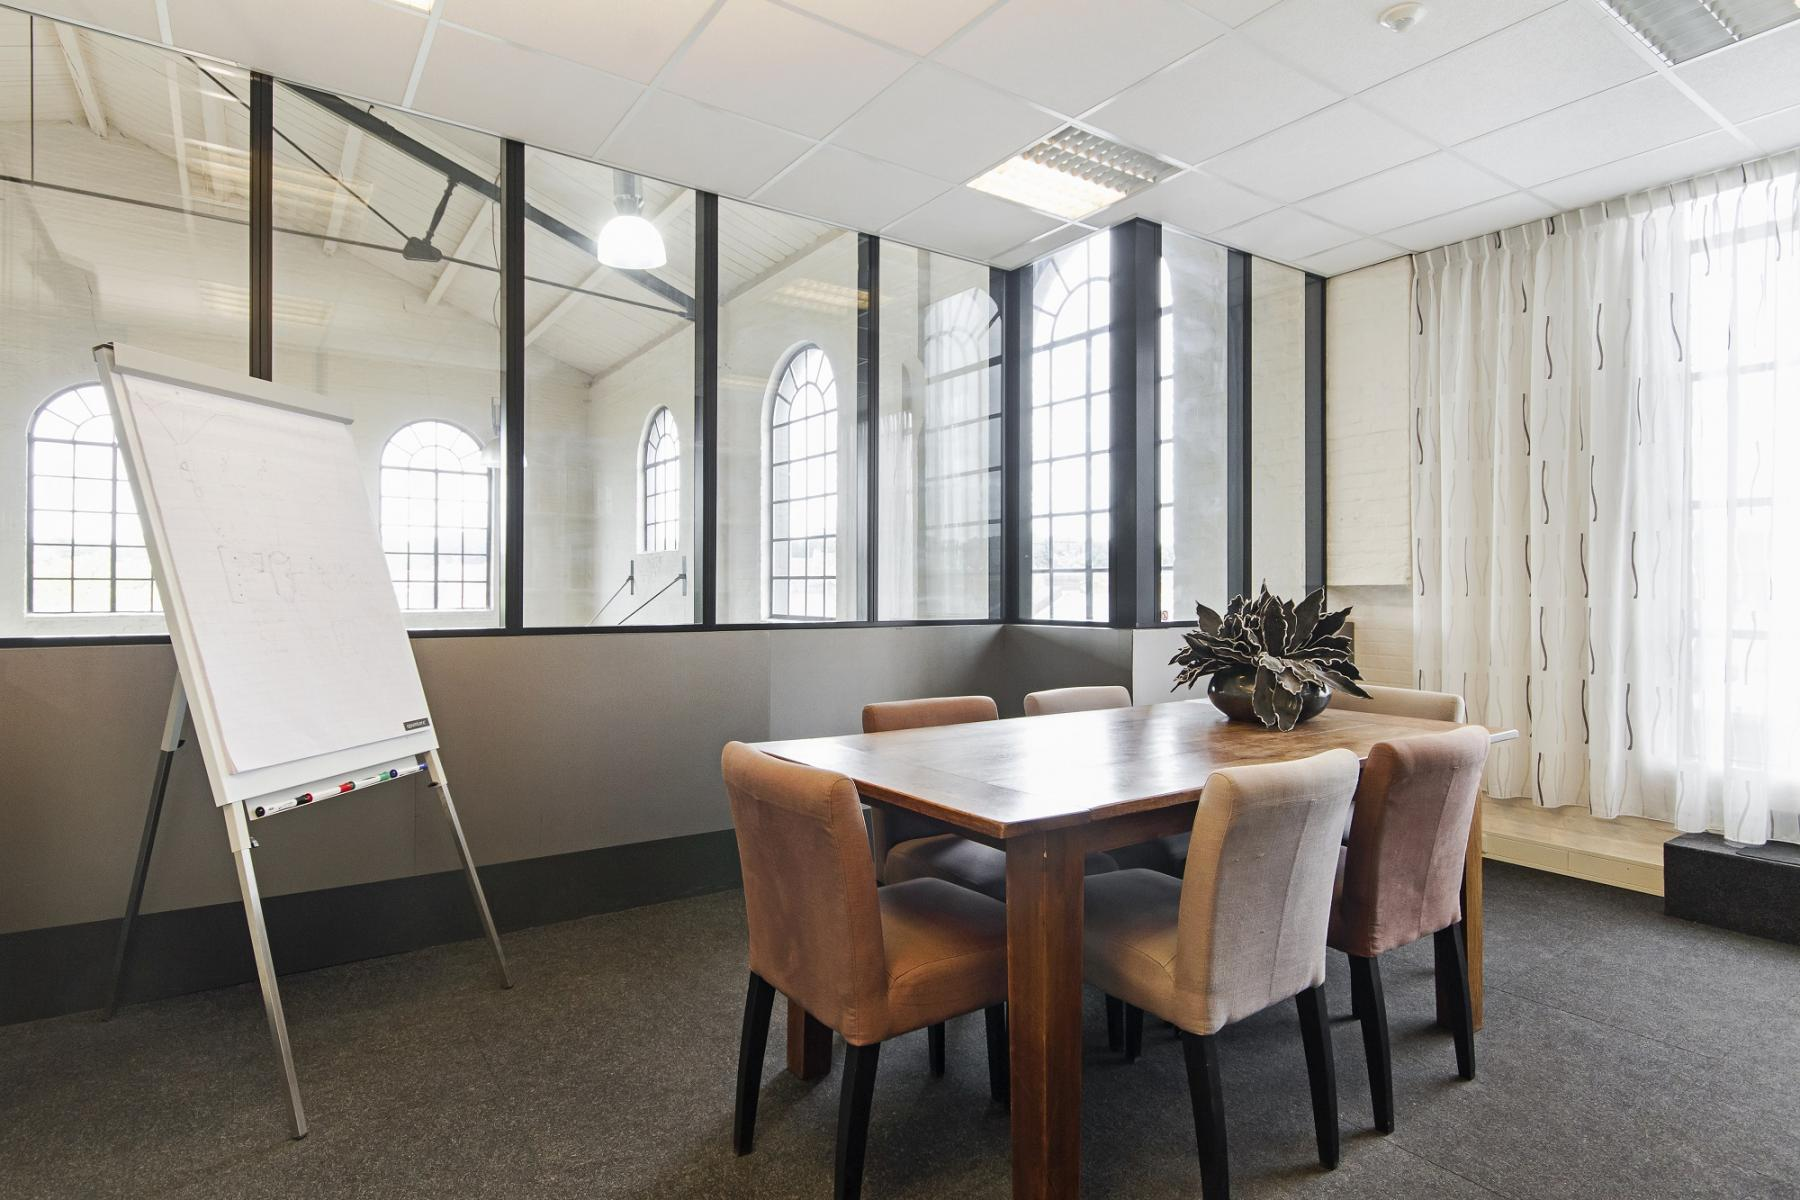 office space for rent in bergen op zoom whiteboard